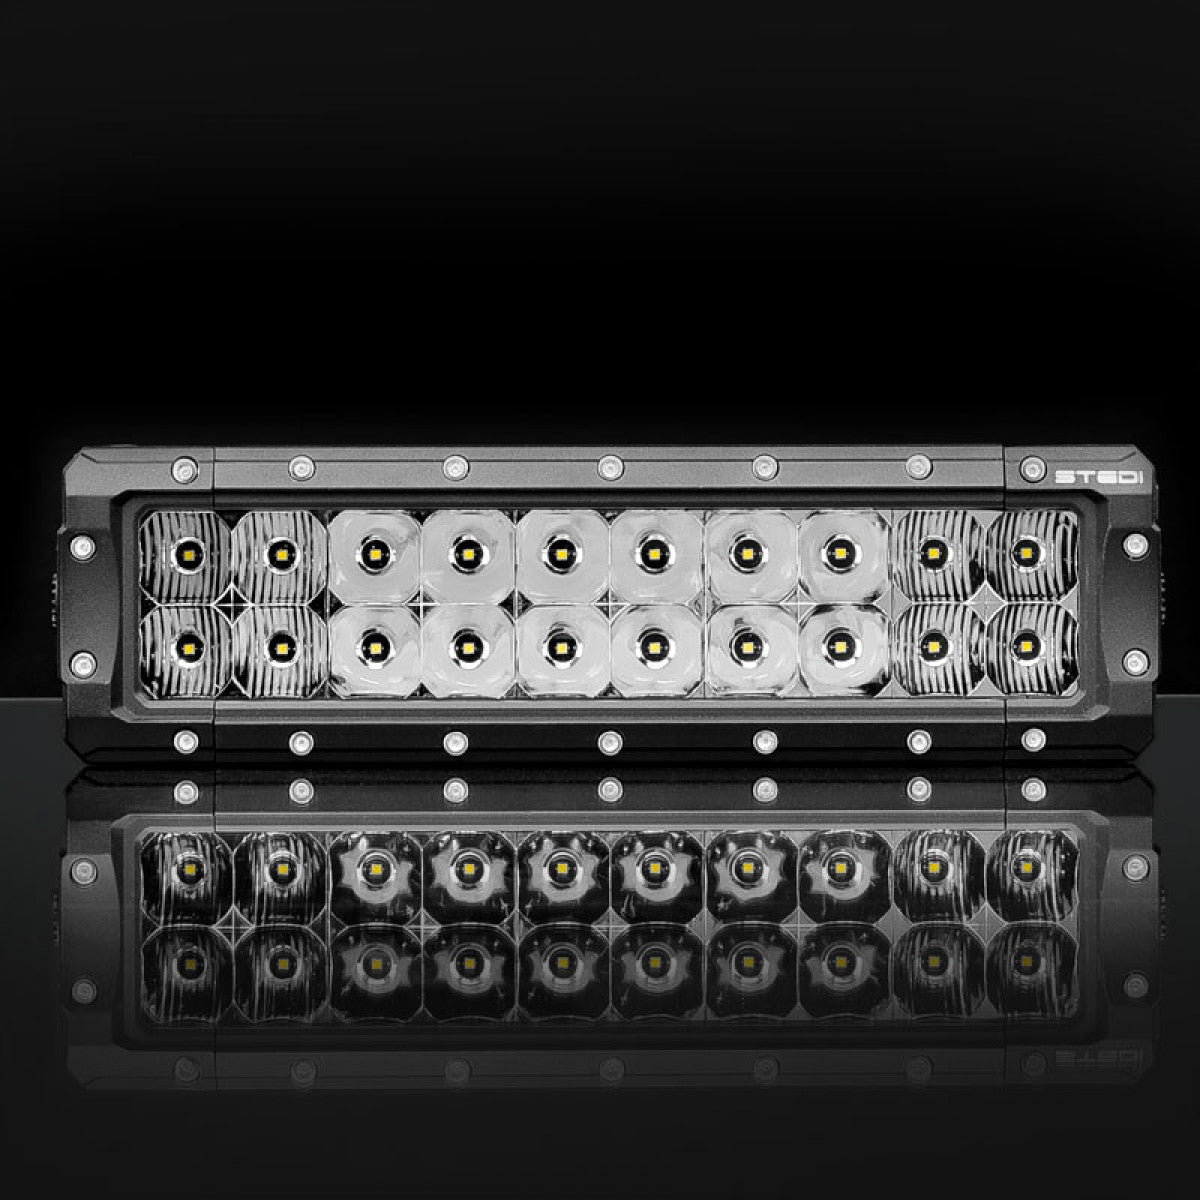 12 INCH ST4K 20 LED DOUBLE ROW LIGHT BAR